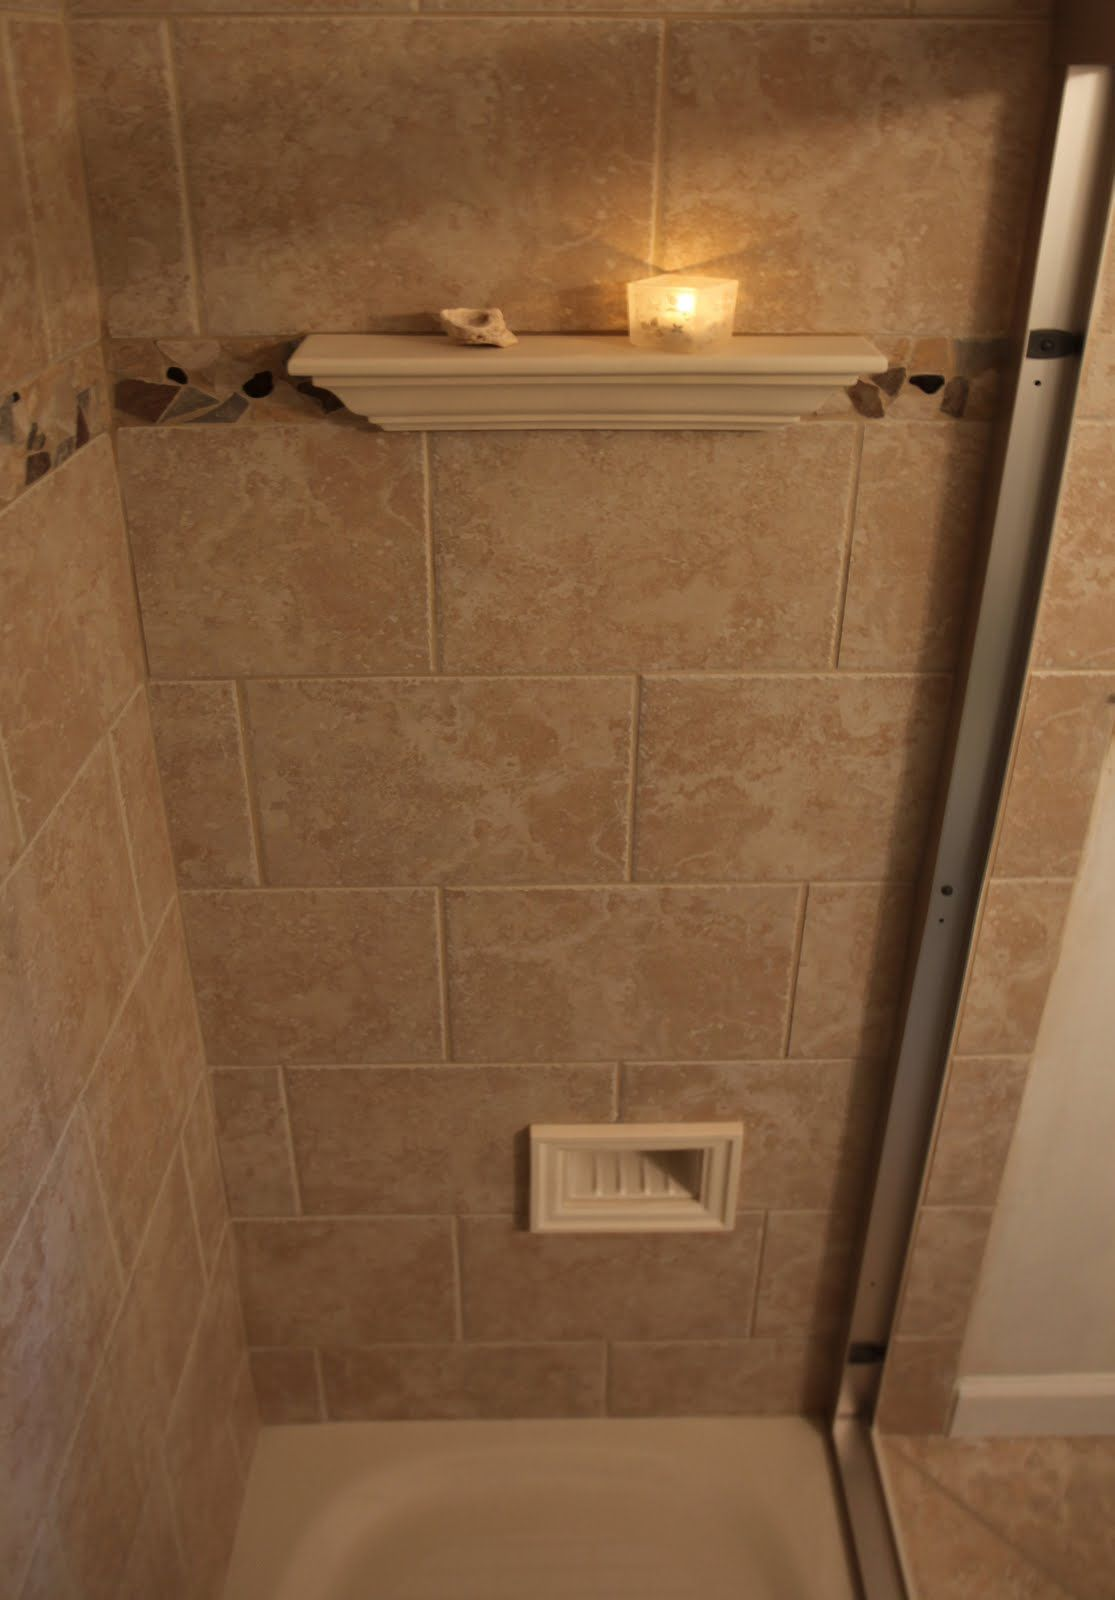 New shower tile design idea the shower tile above was layed out whoda thought to put a foot rest in your shower recessed bathroom tile niches traditional showers dc metro by bathroom tile shower shelves dailygadgetfo Gallery